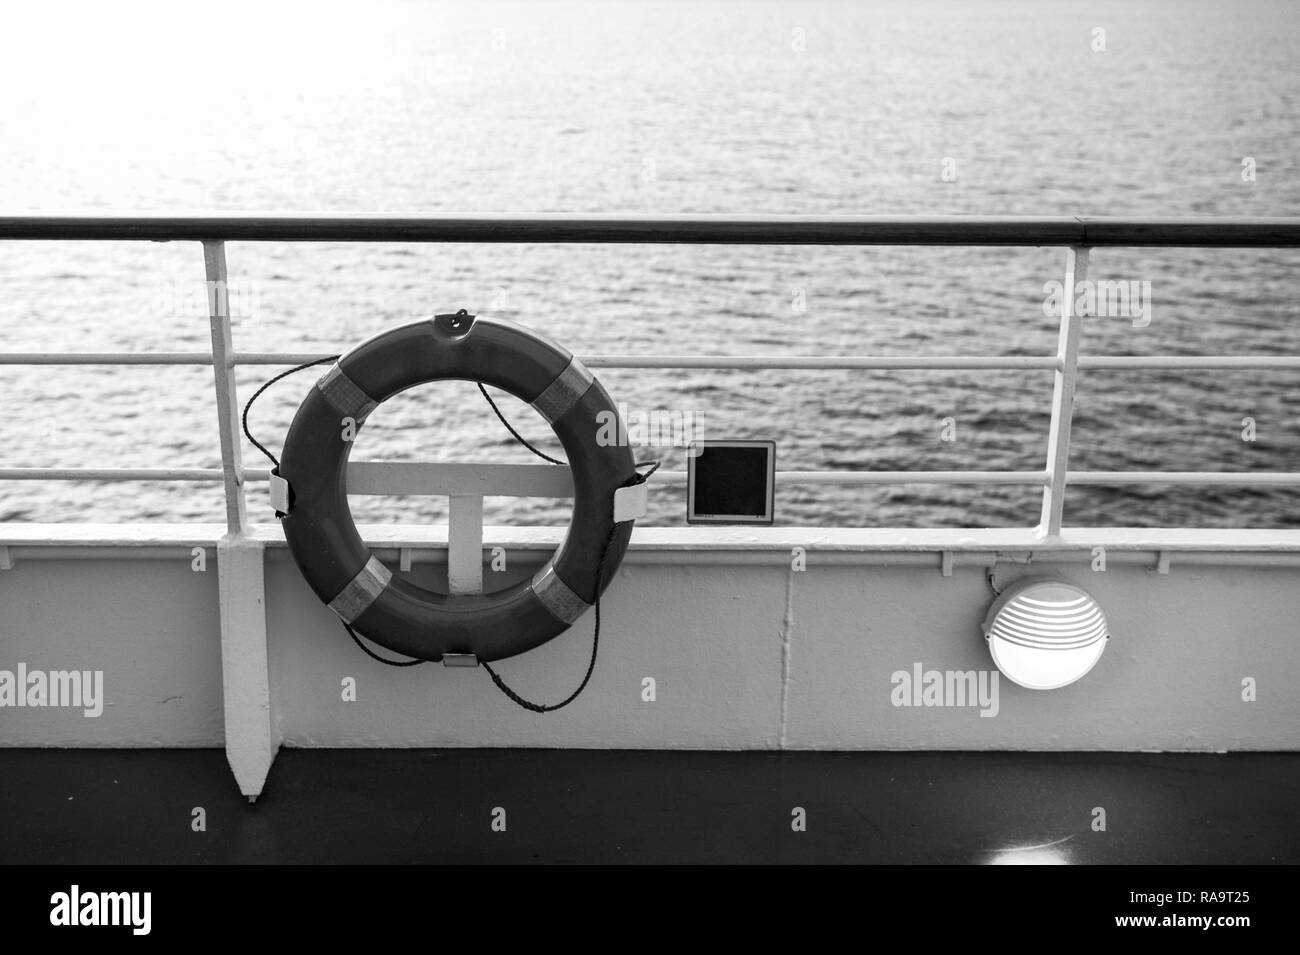 Buoy or lifebuoy ring on shipboard in evening sea in miami, usa. Flotation device on ship side on seascape. Safety, rescue, life preserver. Water travel, voyage, journey. Wanderlust, vacation, trip. - Stock Image